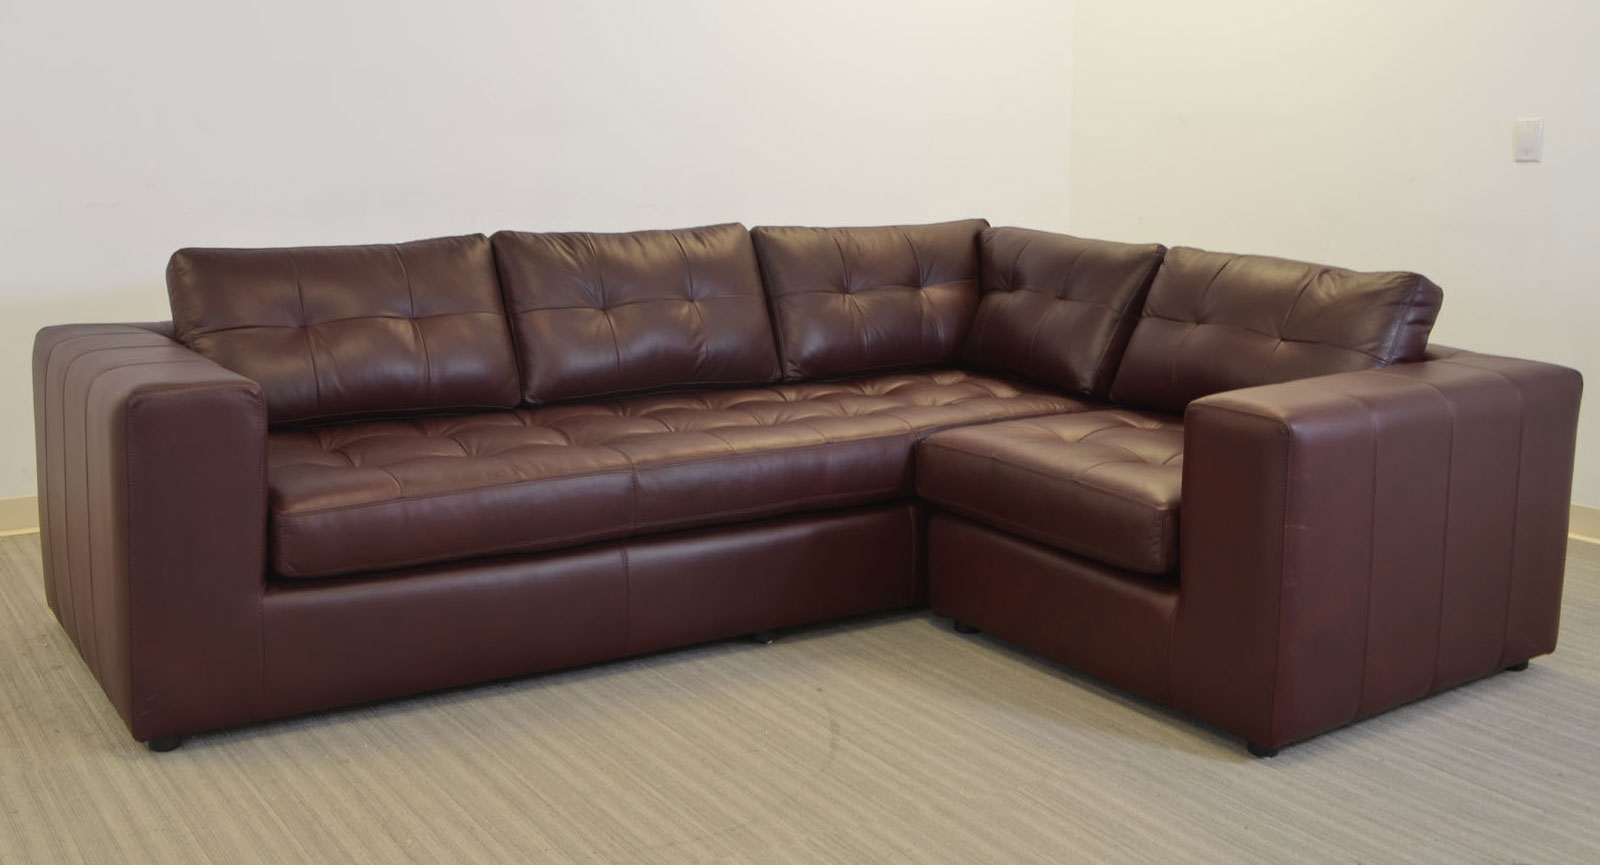 Gev Right Arm Corner Sofa Left Arm Chair